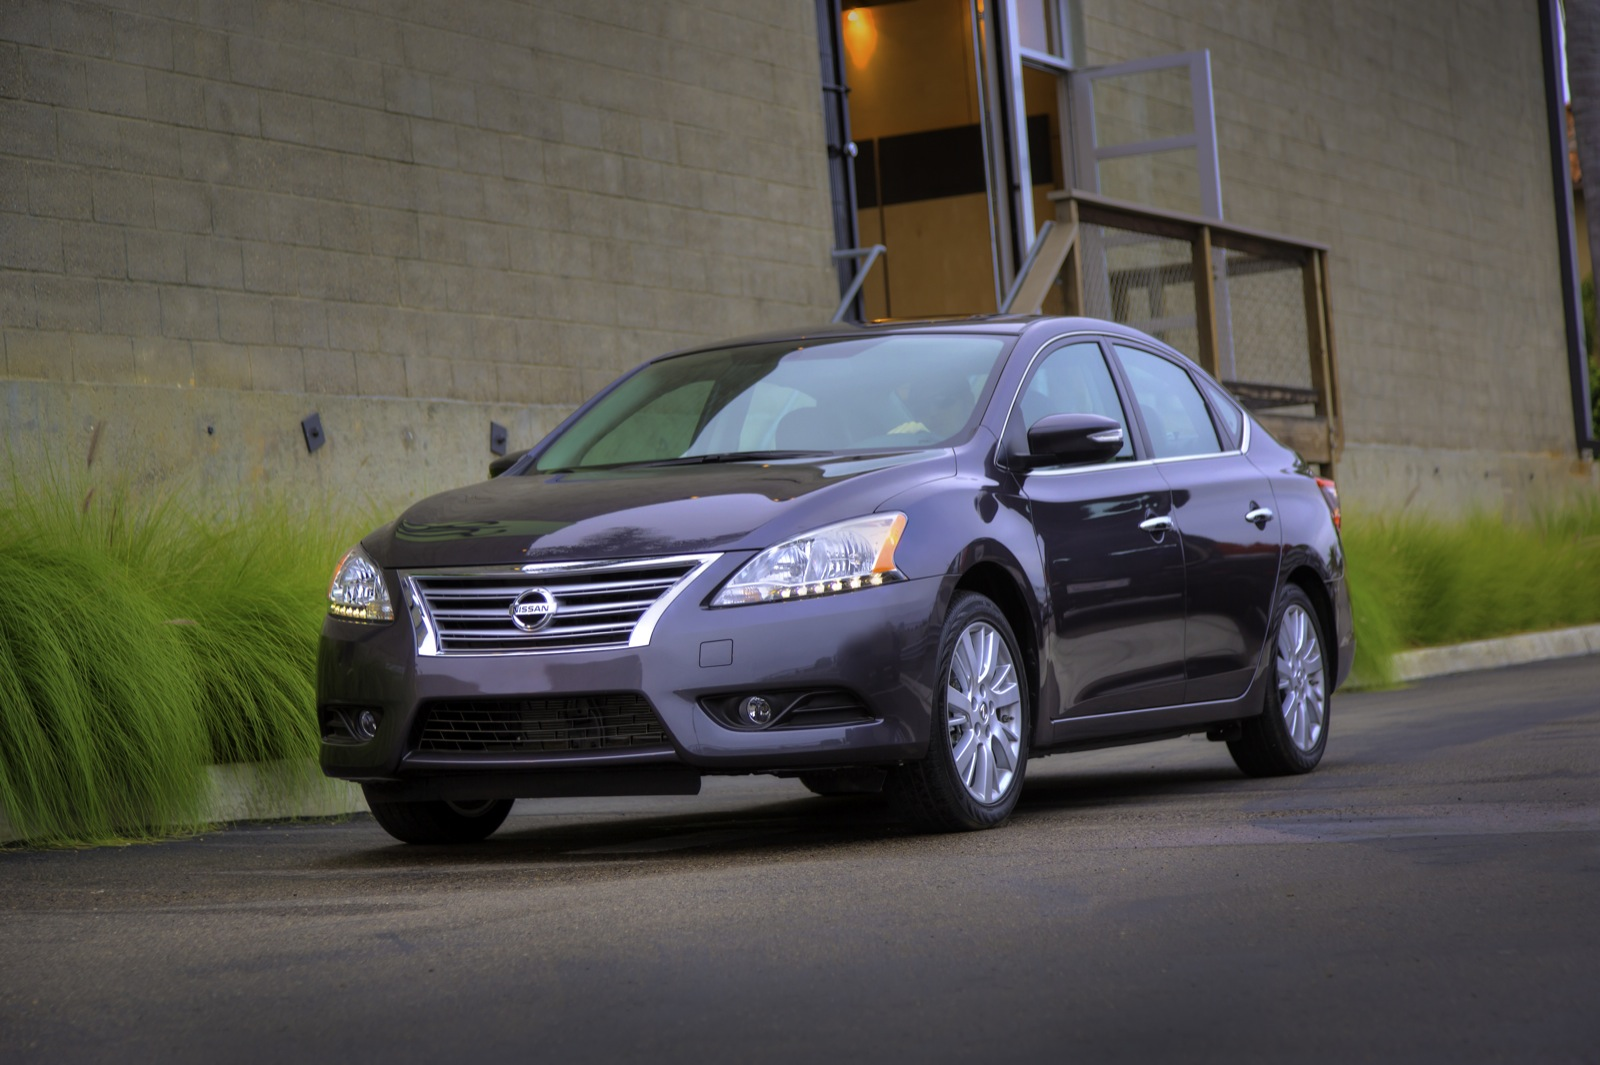 Land Rover Indianapolis >> 2014 Nissan Sentra Review, Ratings, Specs, Prices, and ...